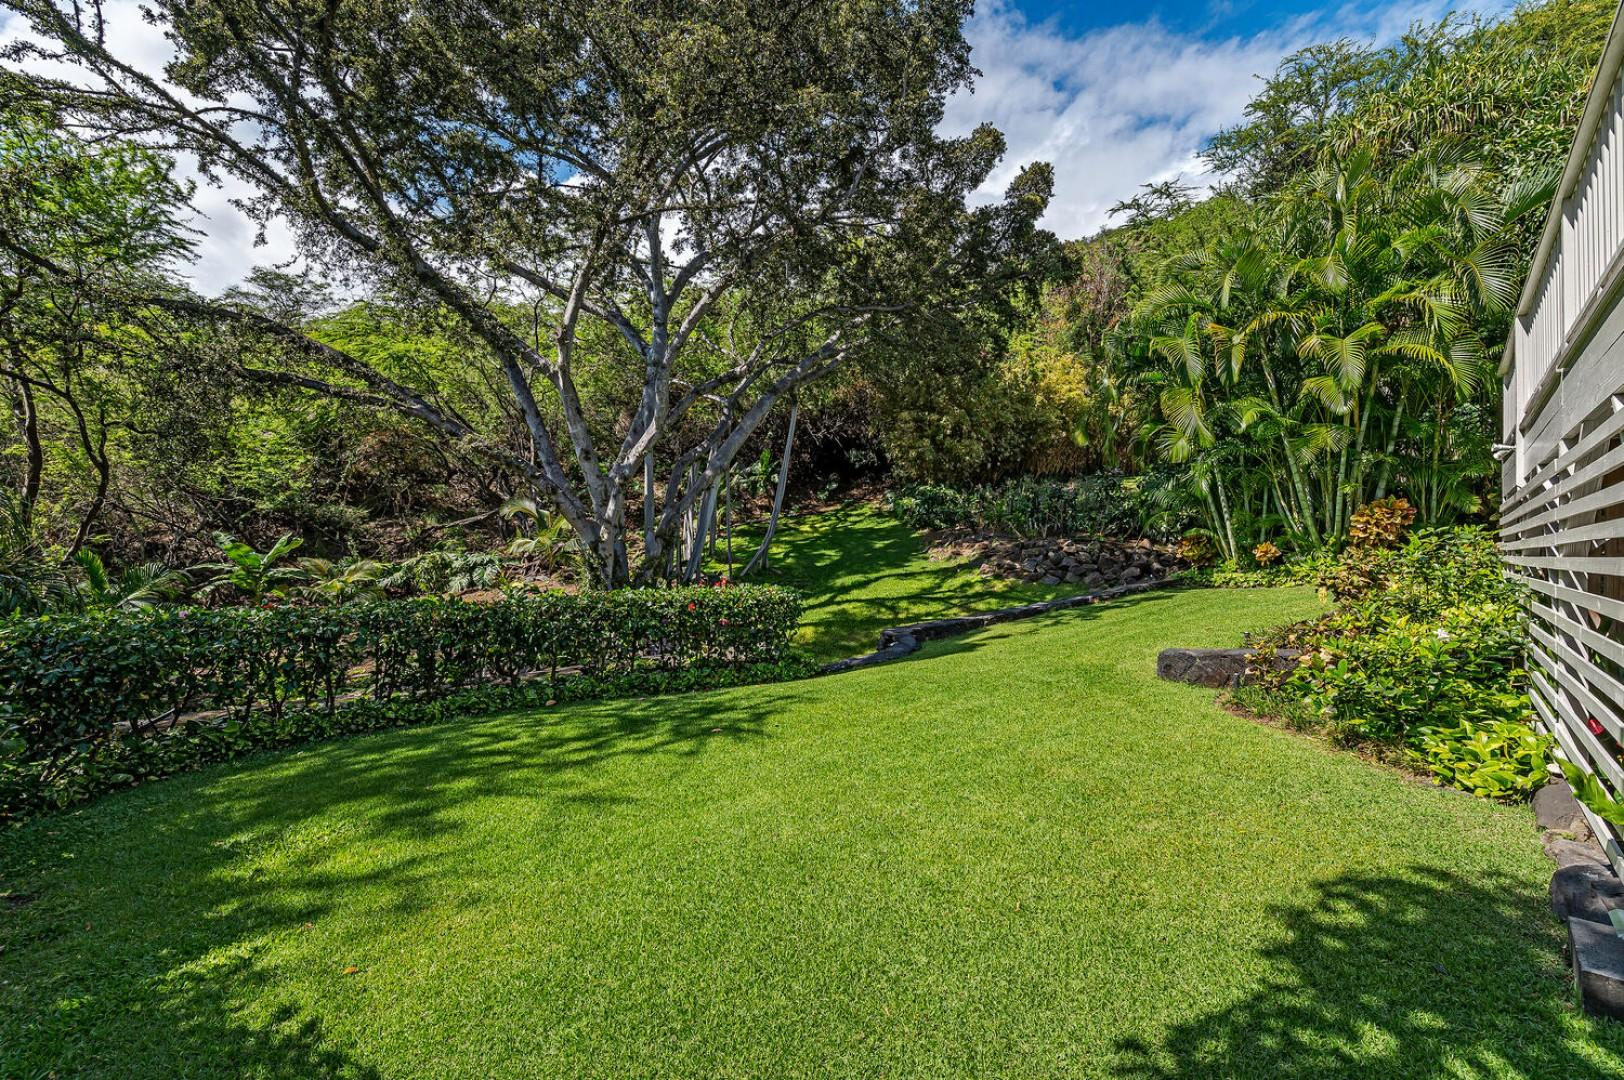 Grassy backyard, lots of space for children to play